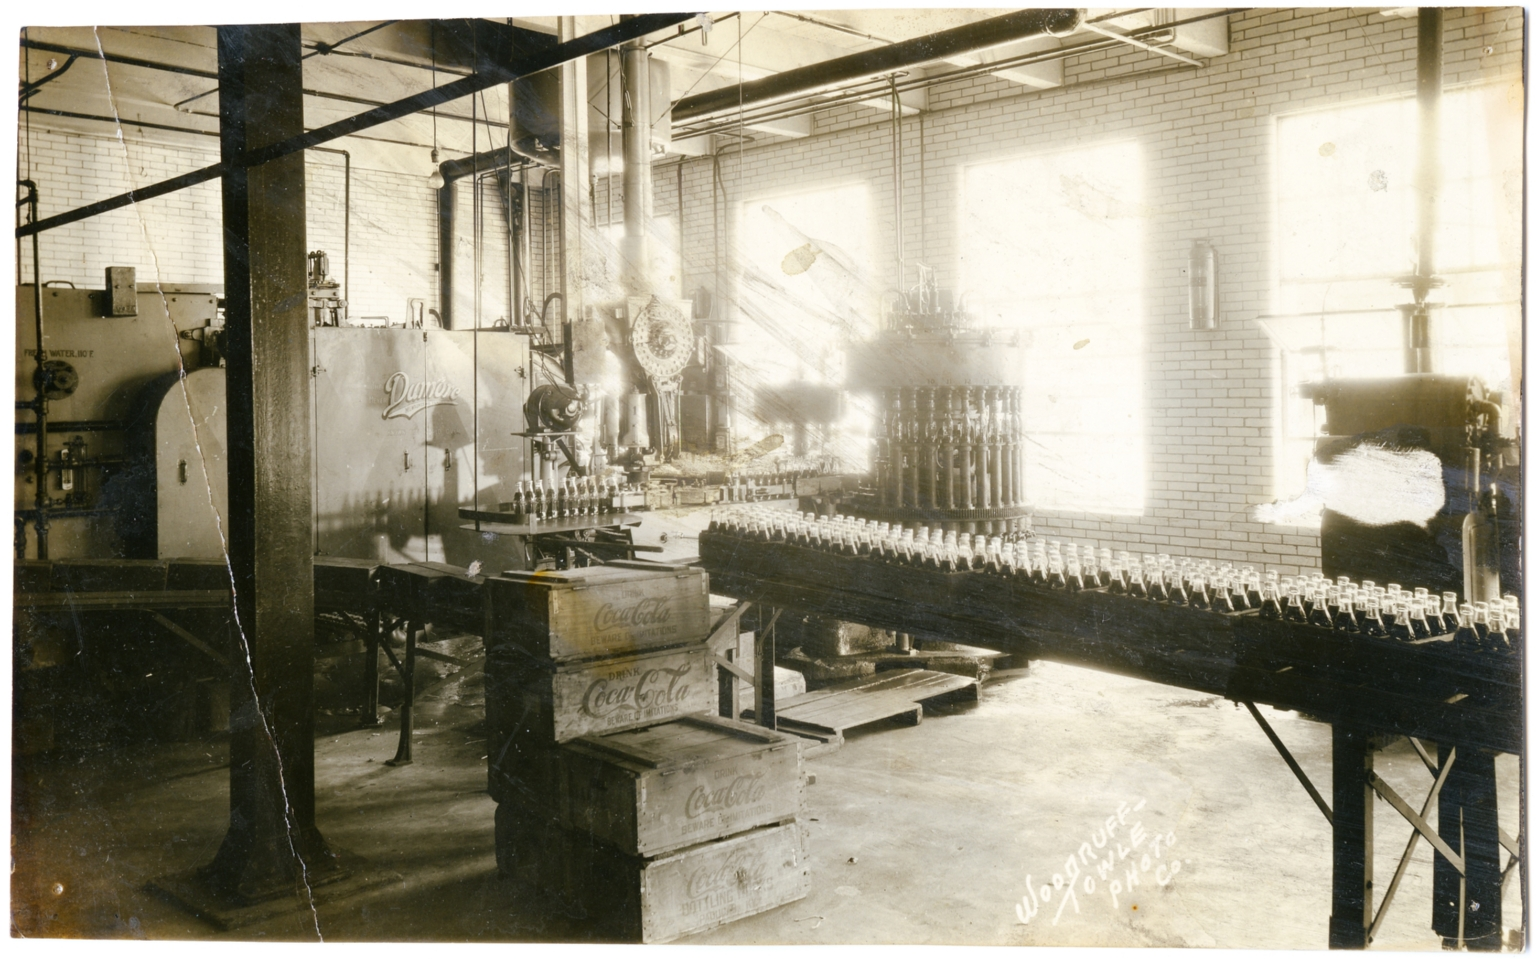 Coca-Cola Bottling Works